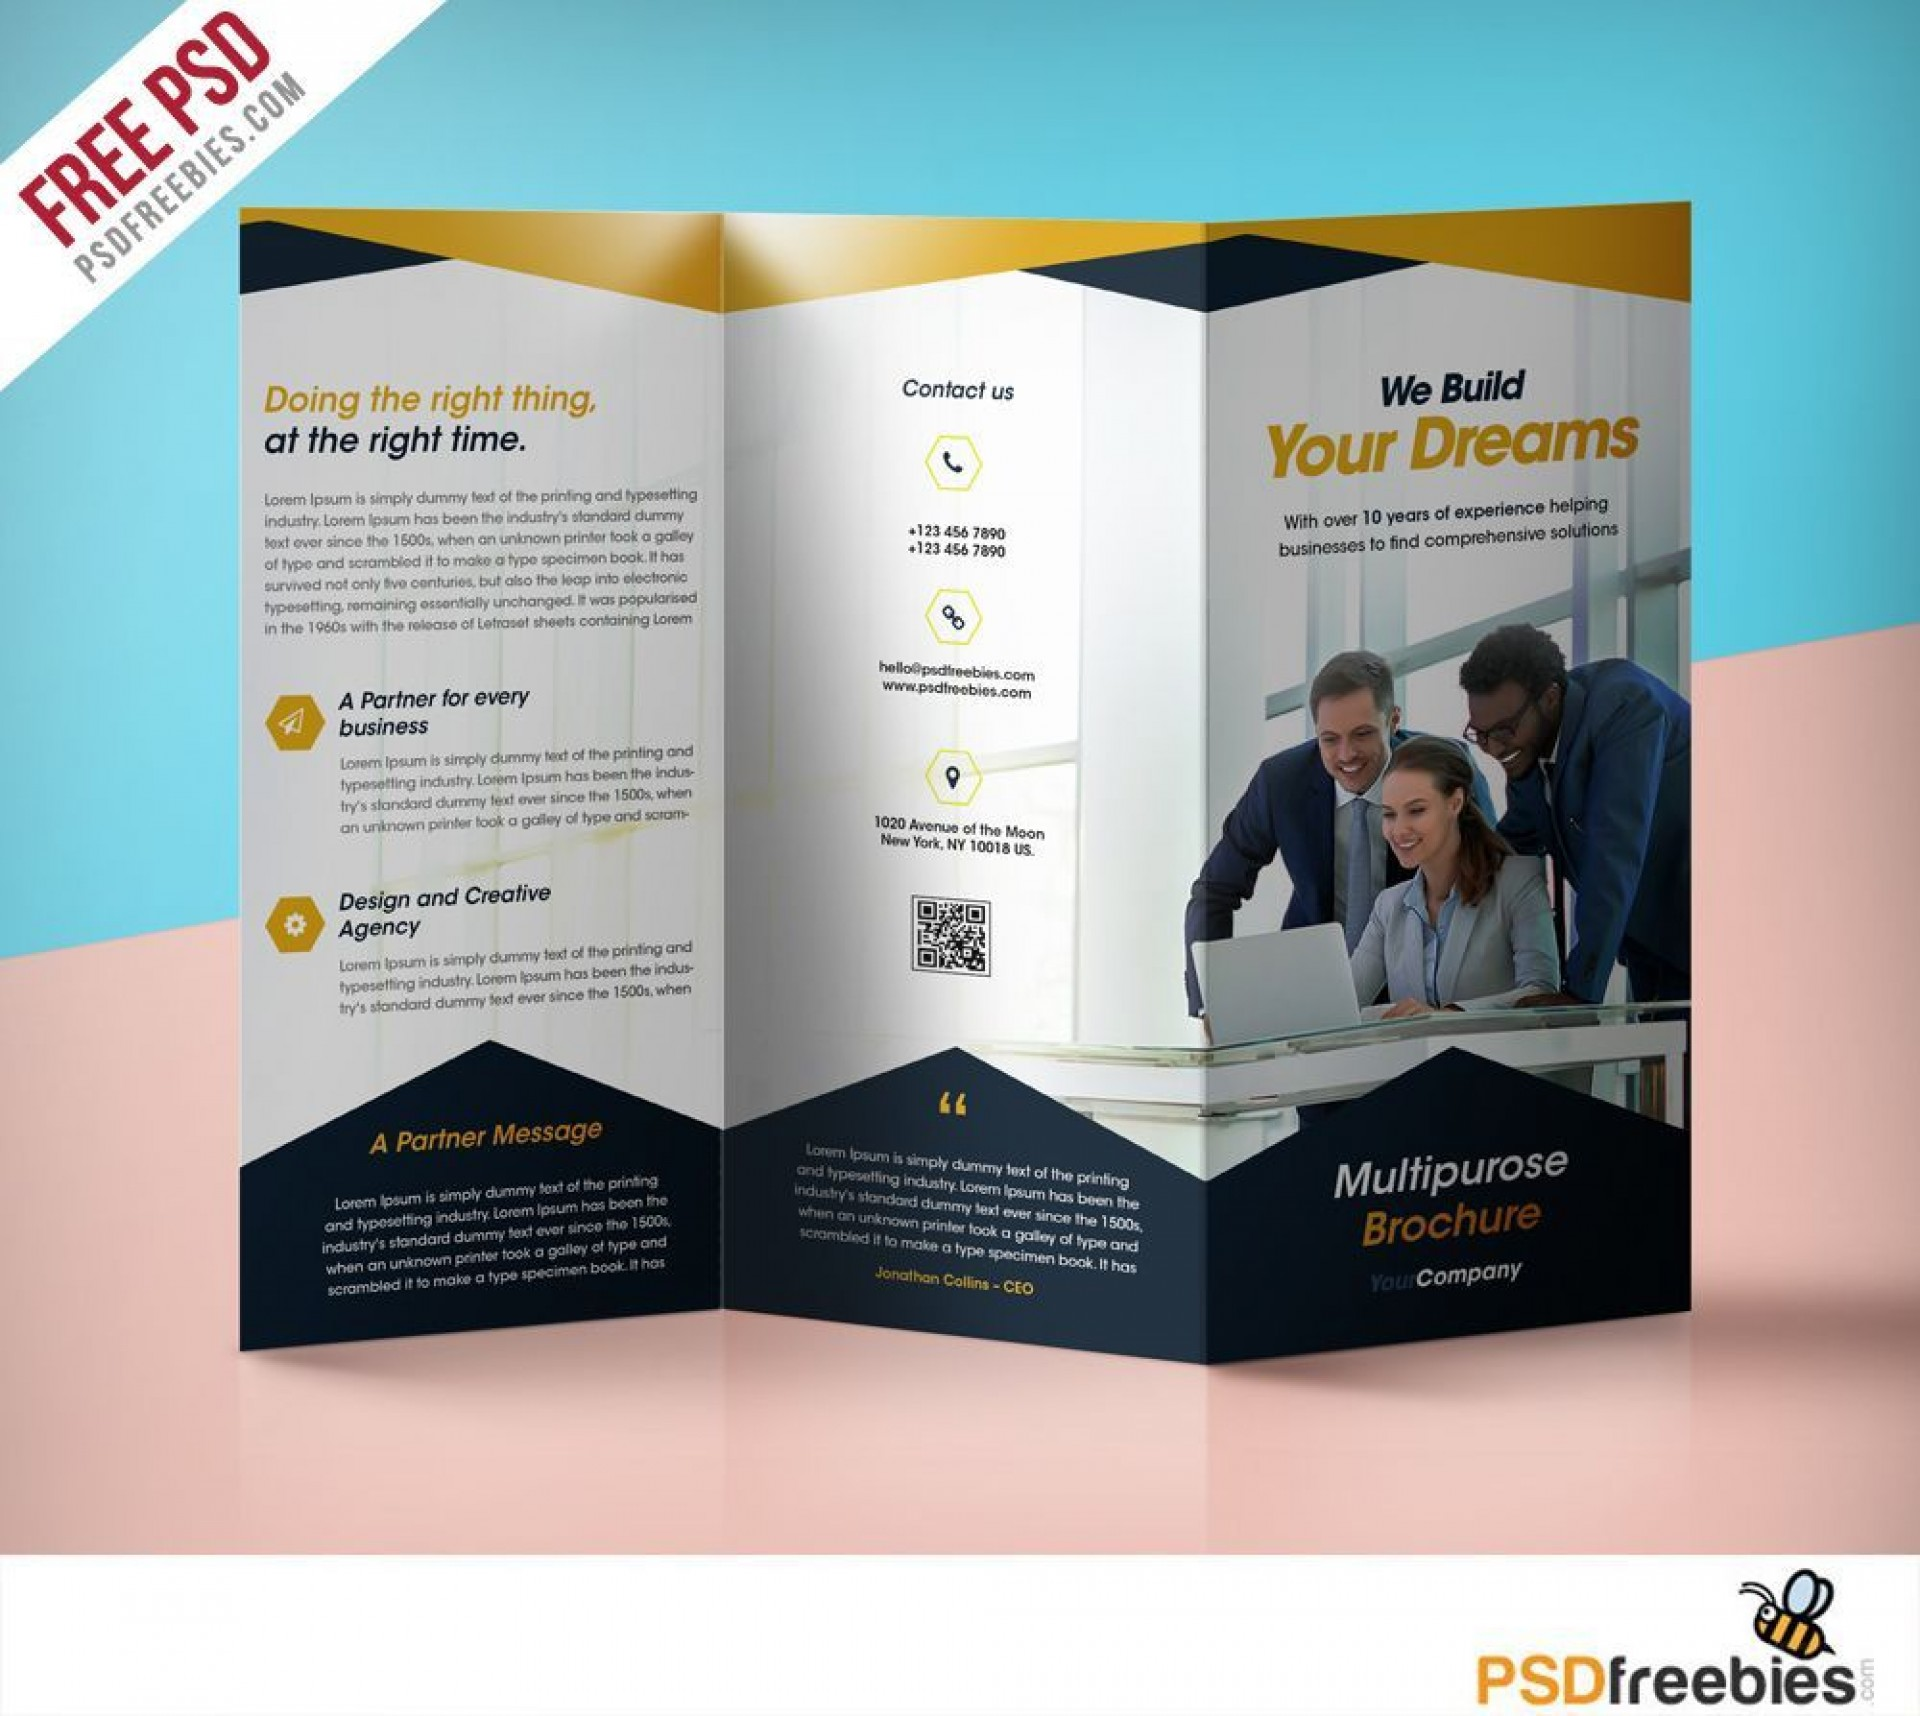 000 Fascinating Free Brochure Template Psd File Front And Back Inspiration 1920